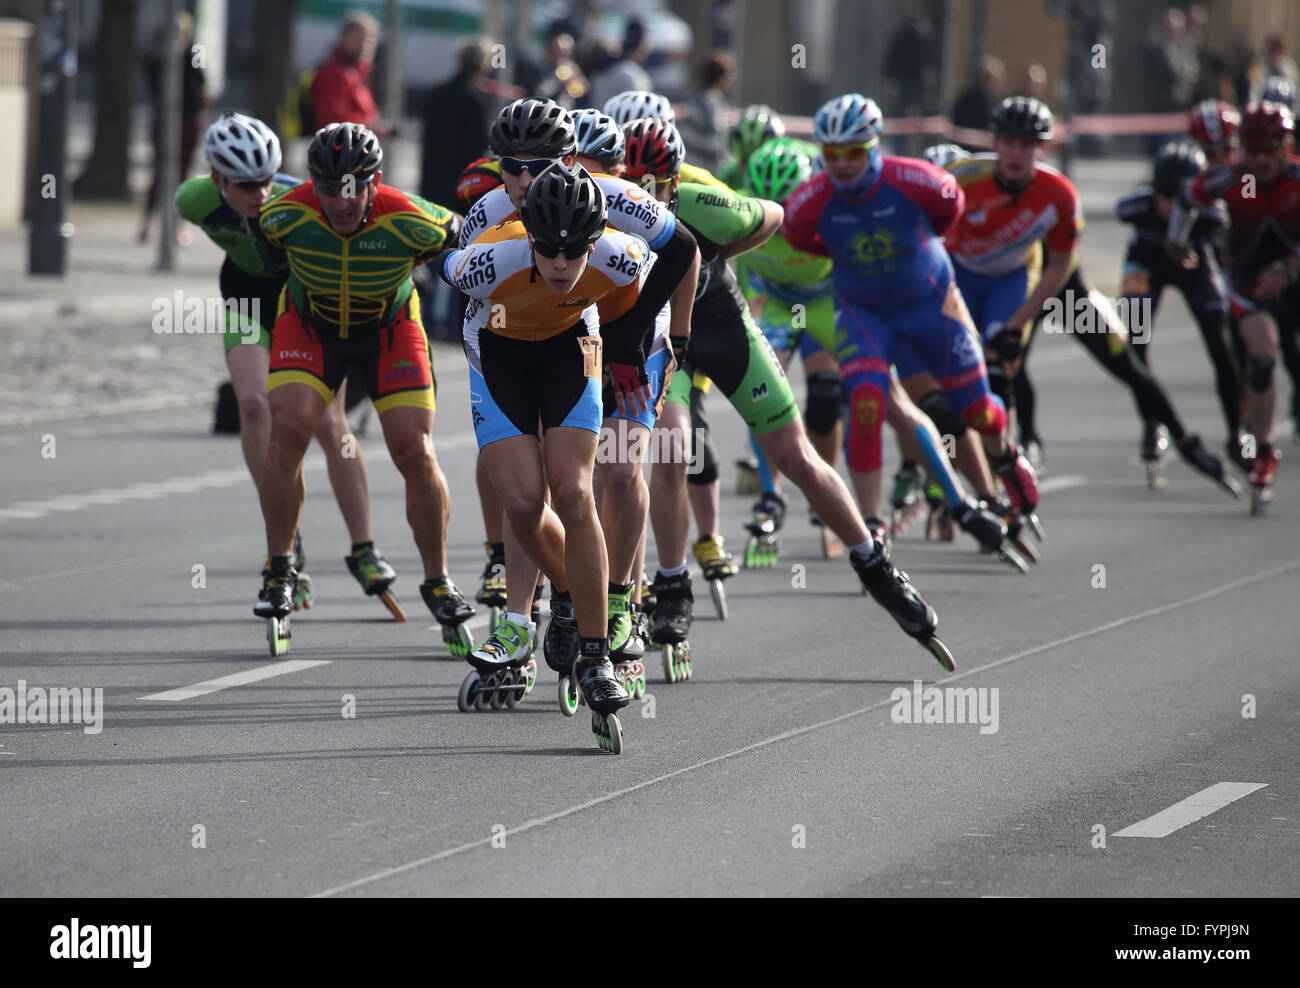 Large group of inline skaters competing in the Berlin half marathon 2016 Stock Photo